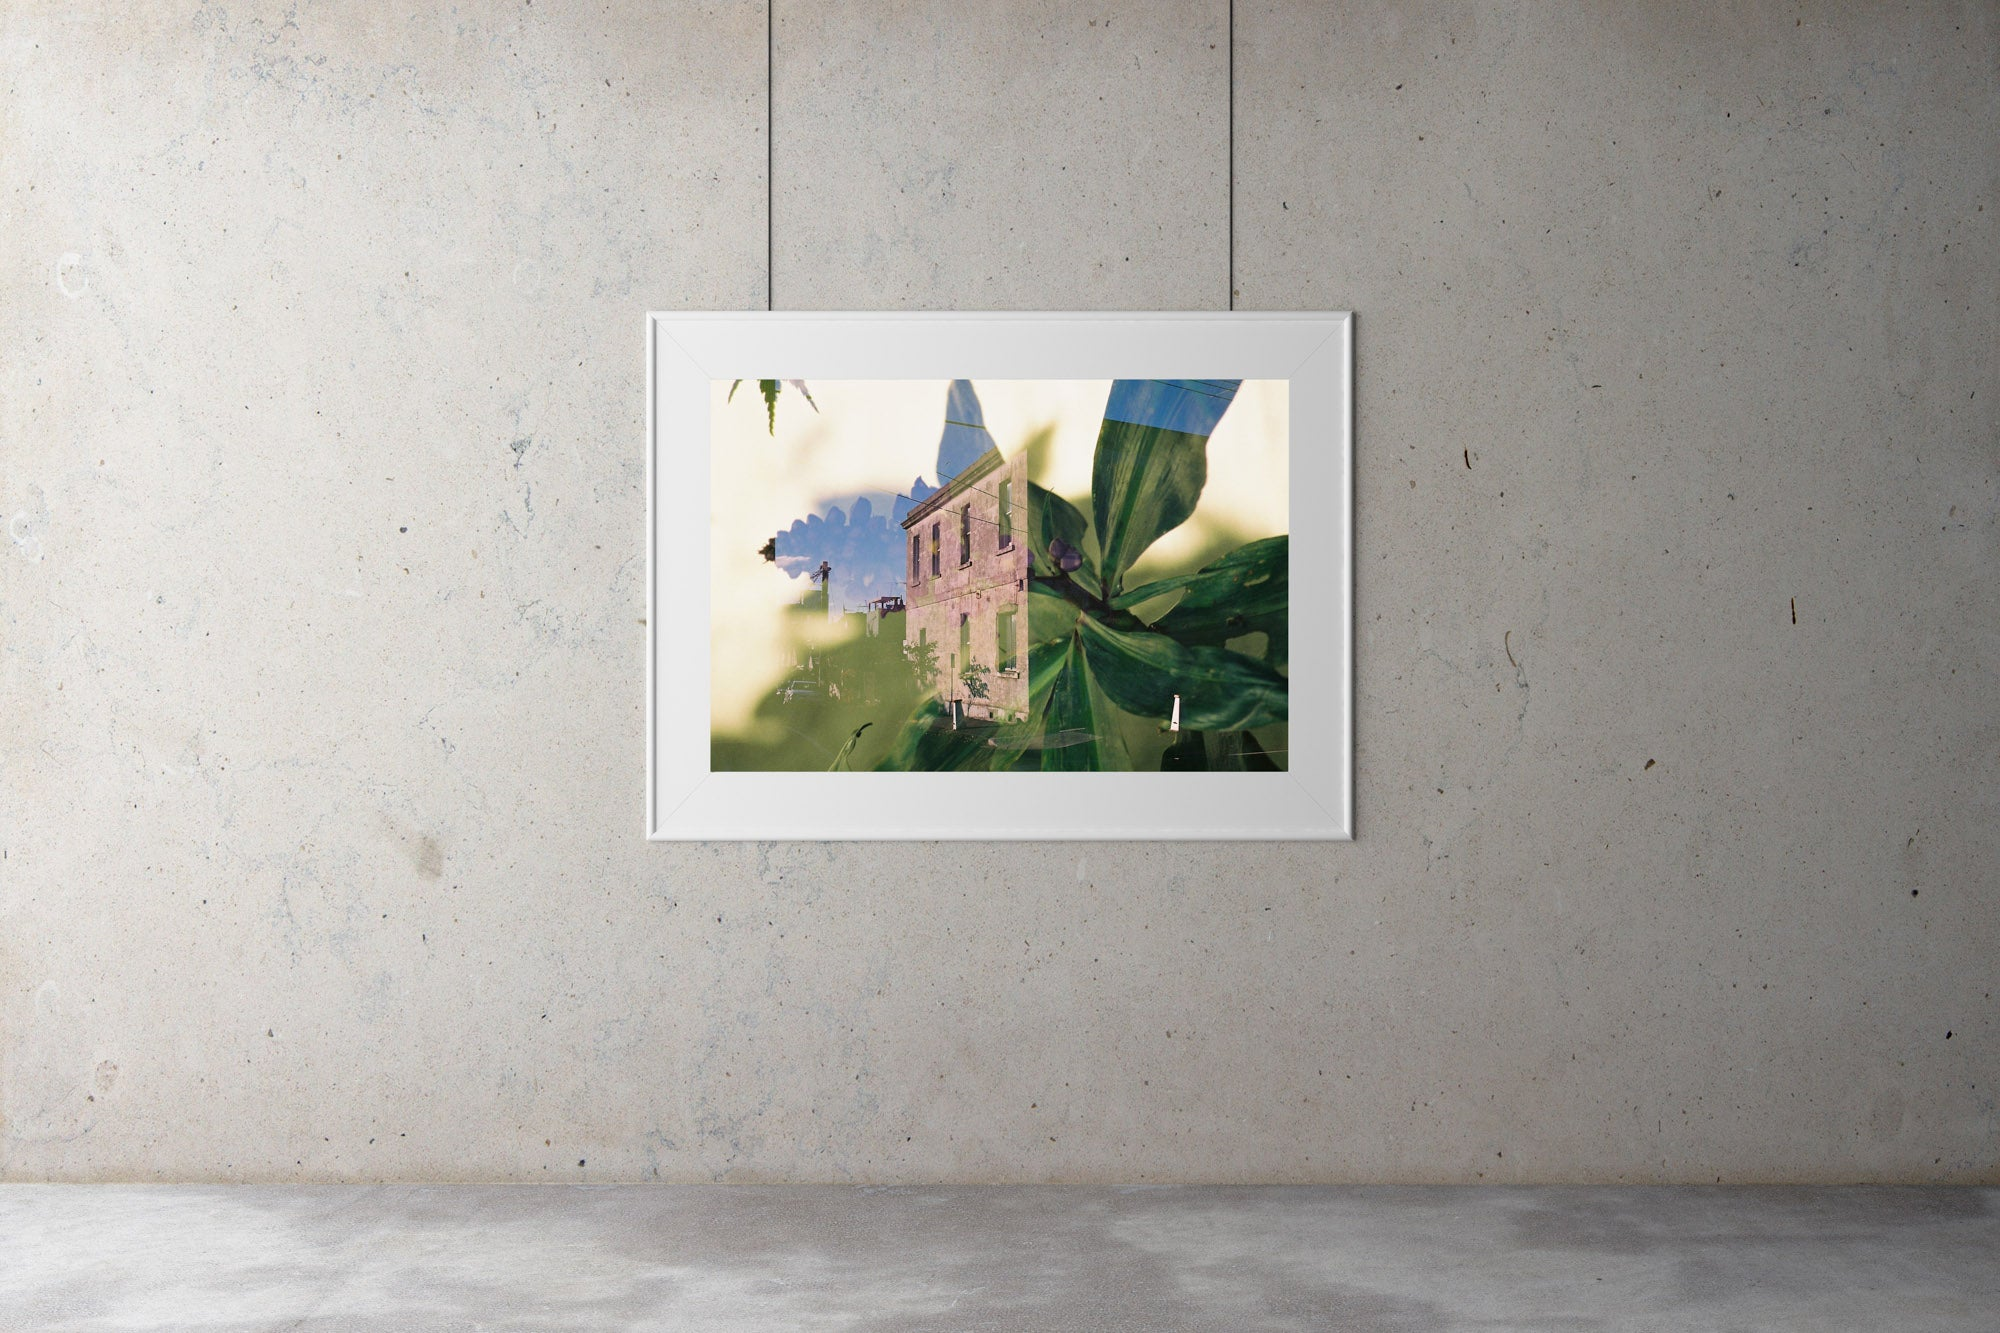 """A double exposure picture showing an old building covered in beautiful  green flowers, plants & trees"". Vintage photo, style Interior design, Pictures Abstract film photography, double exposure, green flowers,"